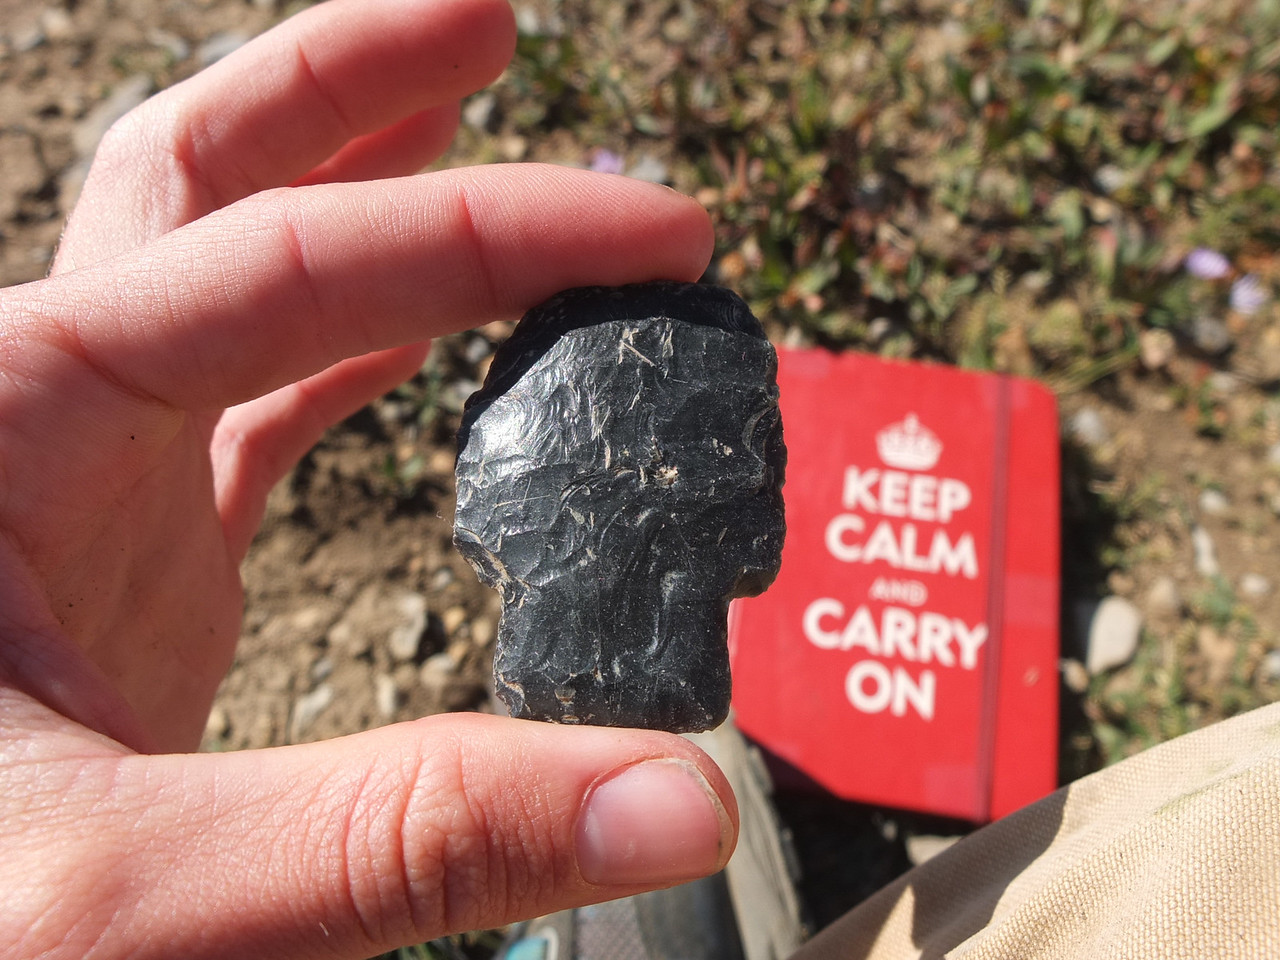 A 9,500 year old Alberta style projectile point that was discovered above 11,000 feet in the Teton Range